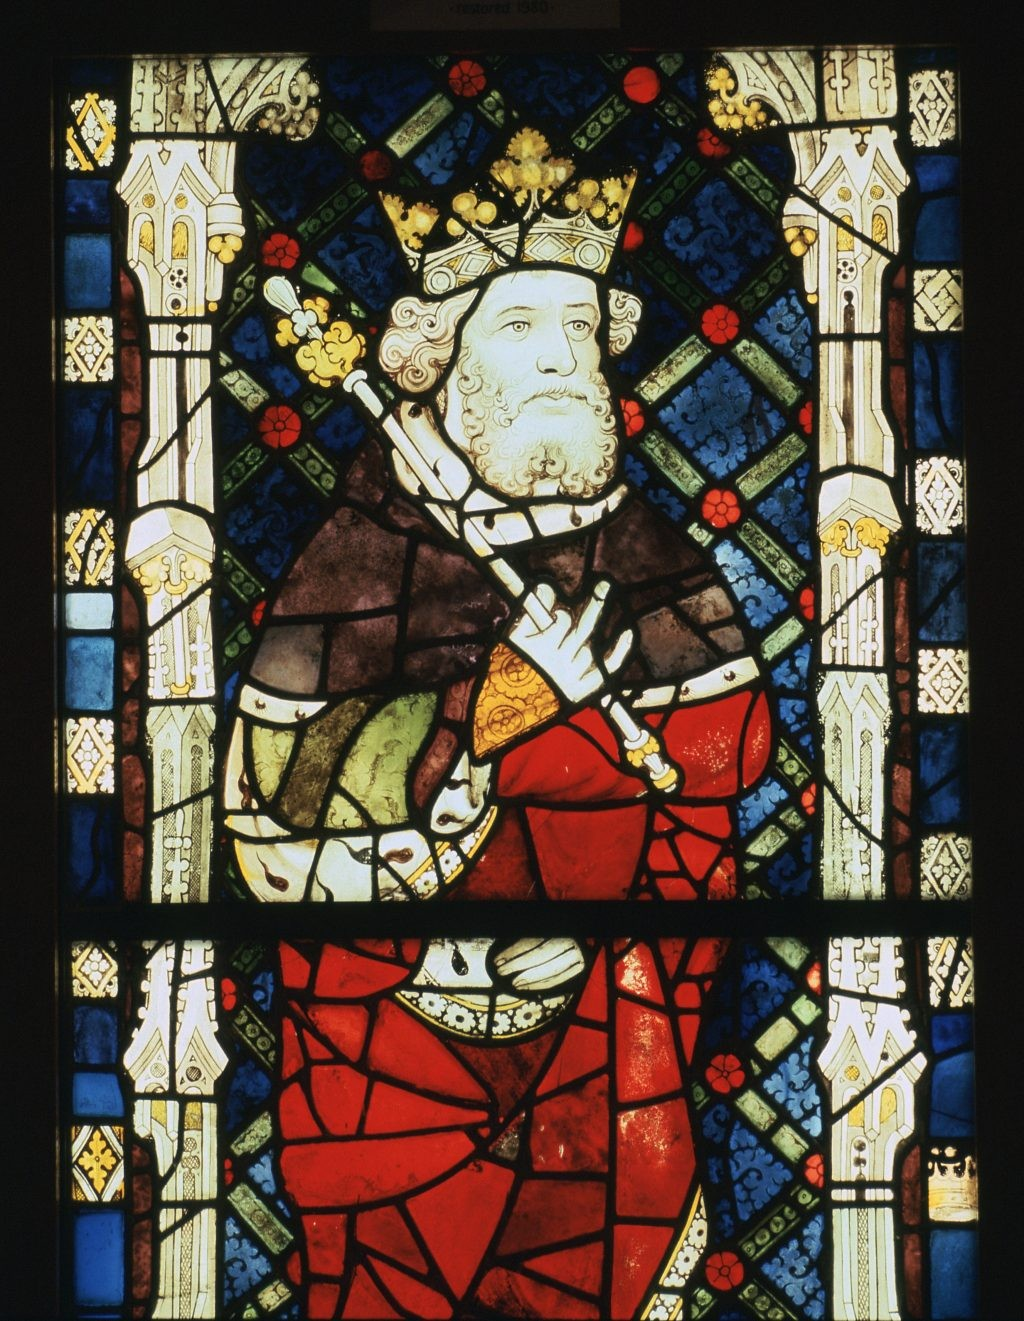 A 15th-century stained glass window from Canterbury Cathedral, depicting King Cnut. (CM Dixon/Print Collector/Getty Images) (Photo by CM Dixon/Print Collector/Getty Images)